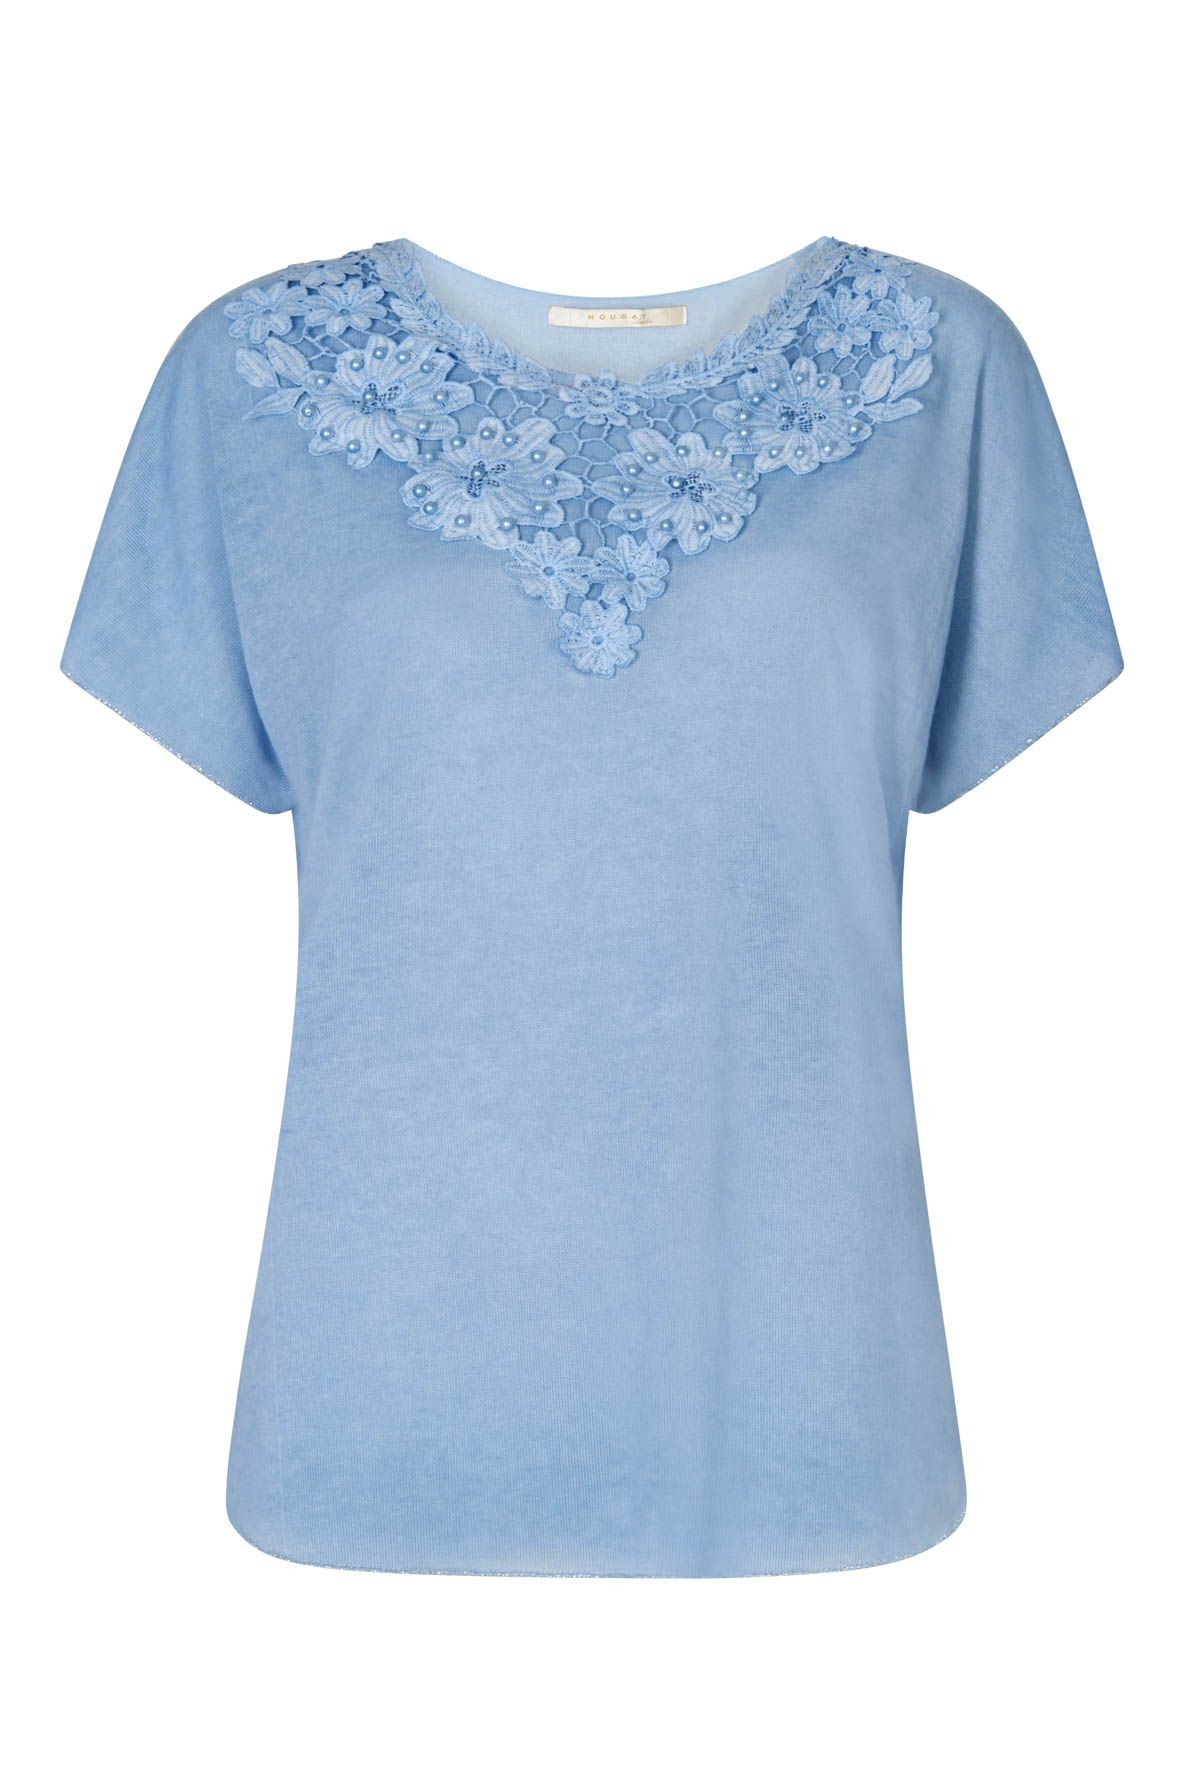 Nougat London Tulip Embroidered Top, Powder Blue